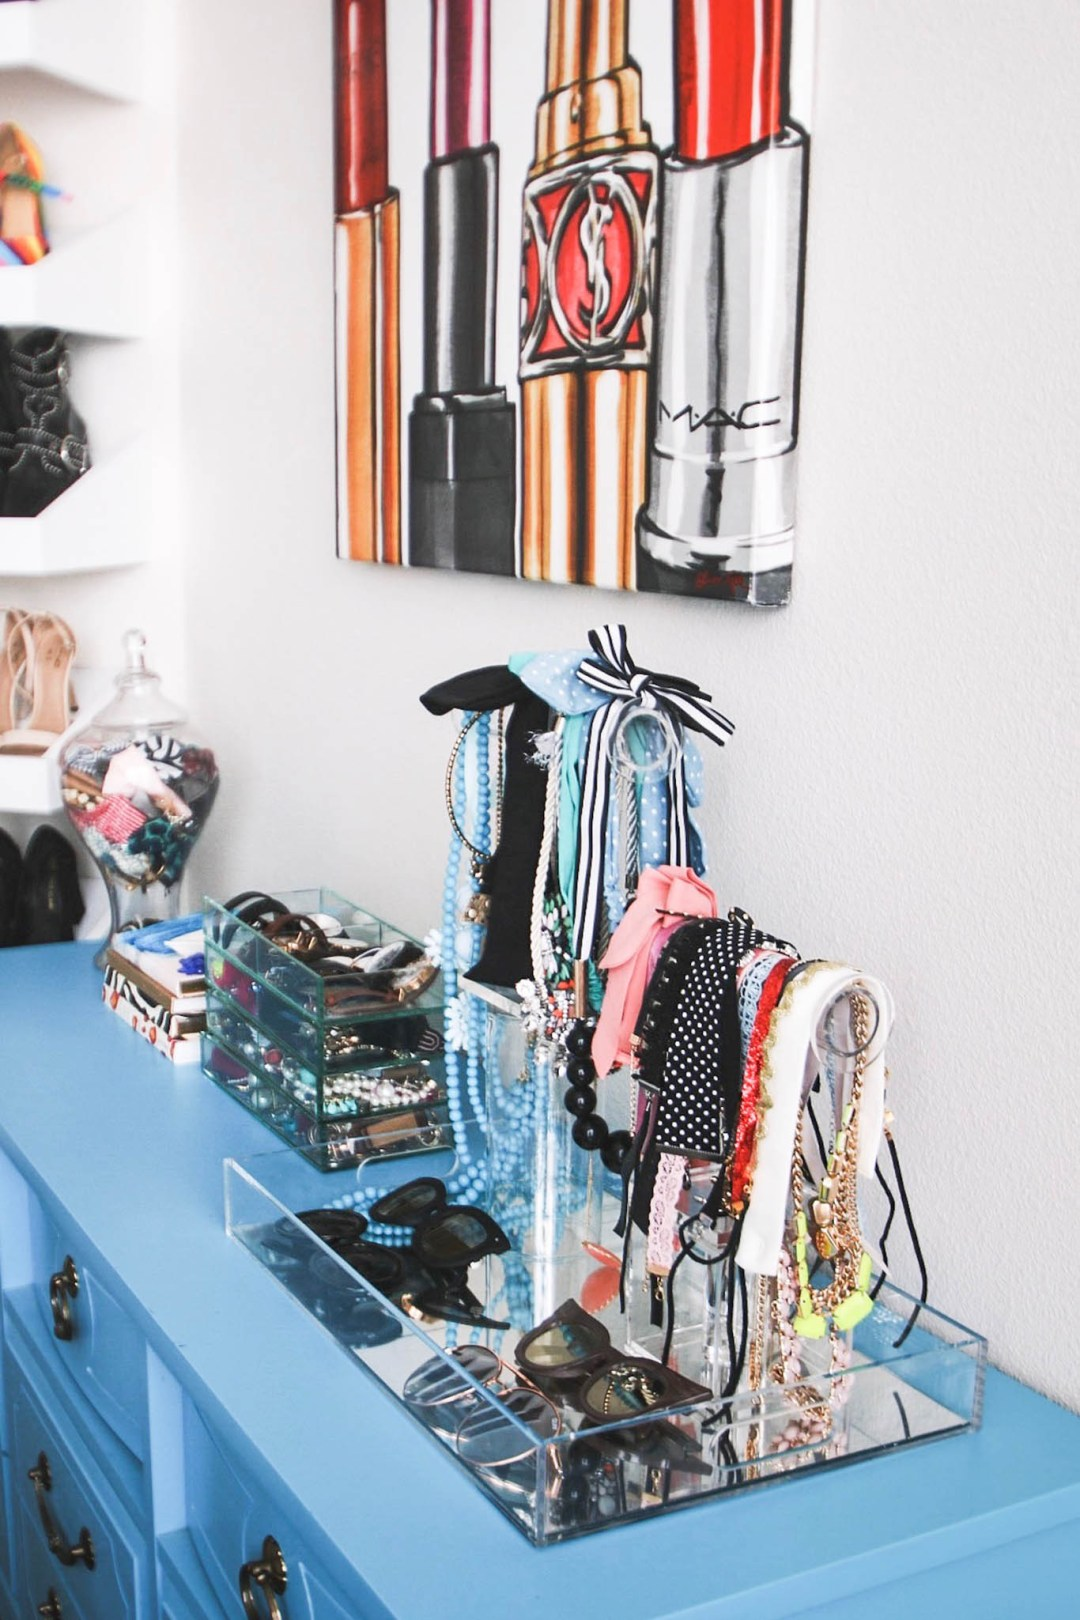 Alena Gidenko of modaprints.com shares how to organize your jewelry